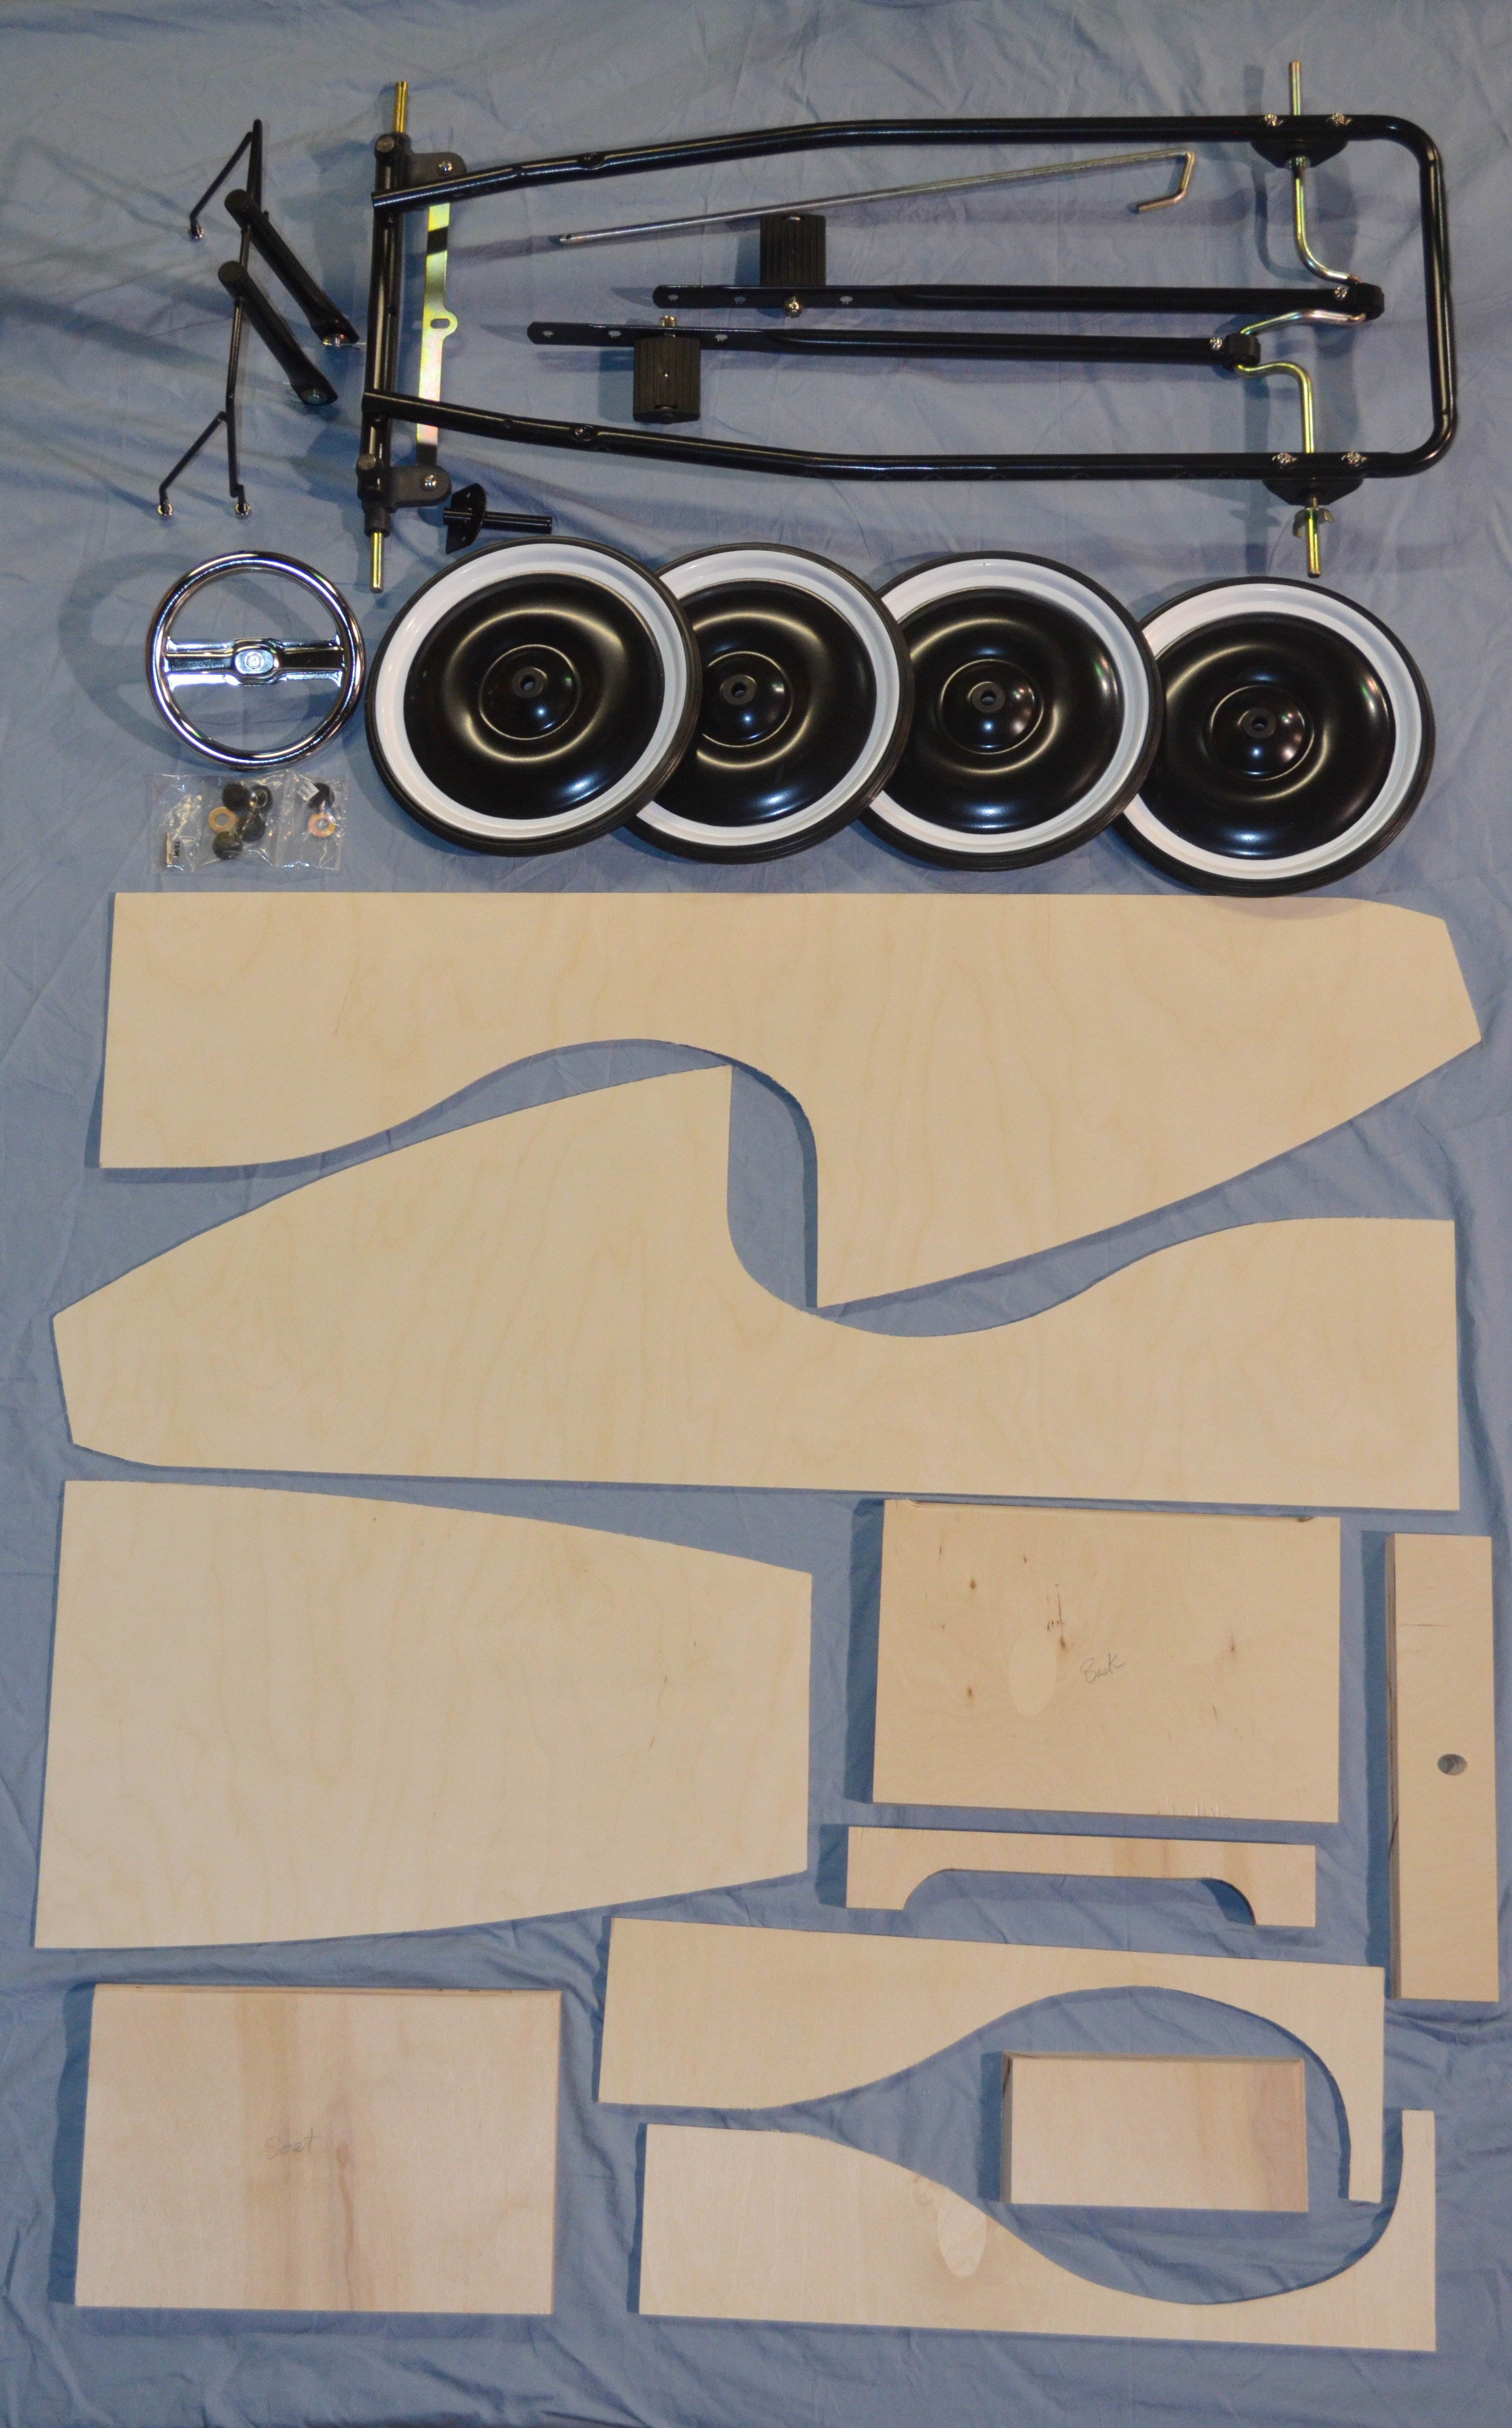 Diy Pedal Car : Wooden pedal car kit with chassis pedalcar